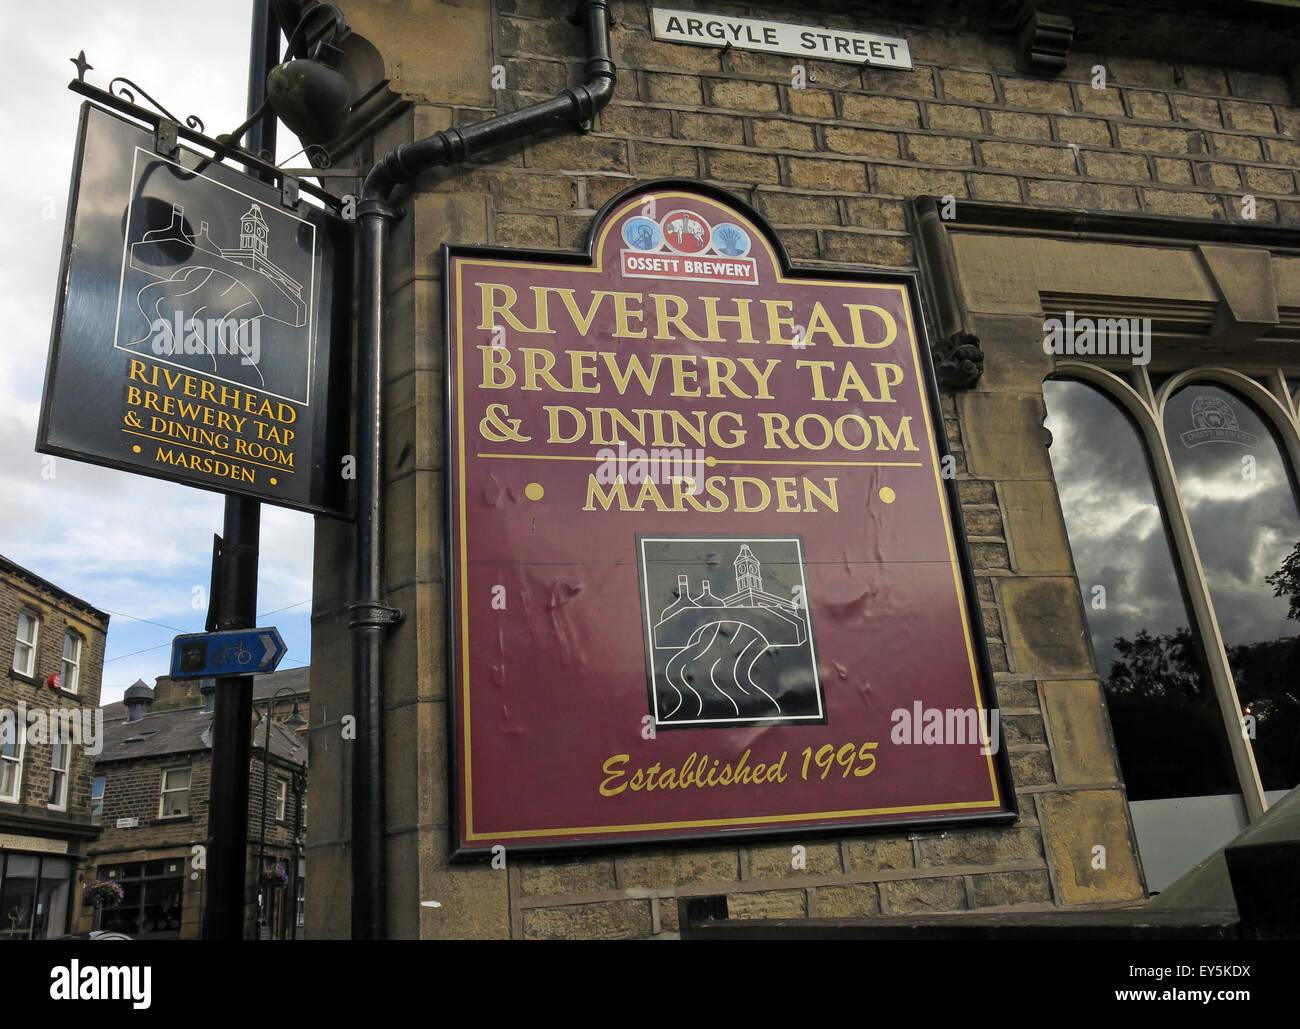 Riverhead Brewery Pub Marsden, West Yorkshire, England, Uk on the CAMRA aletrain route Stock Photo